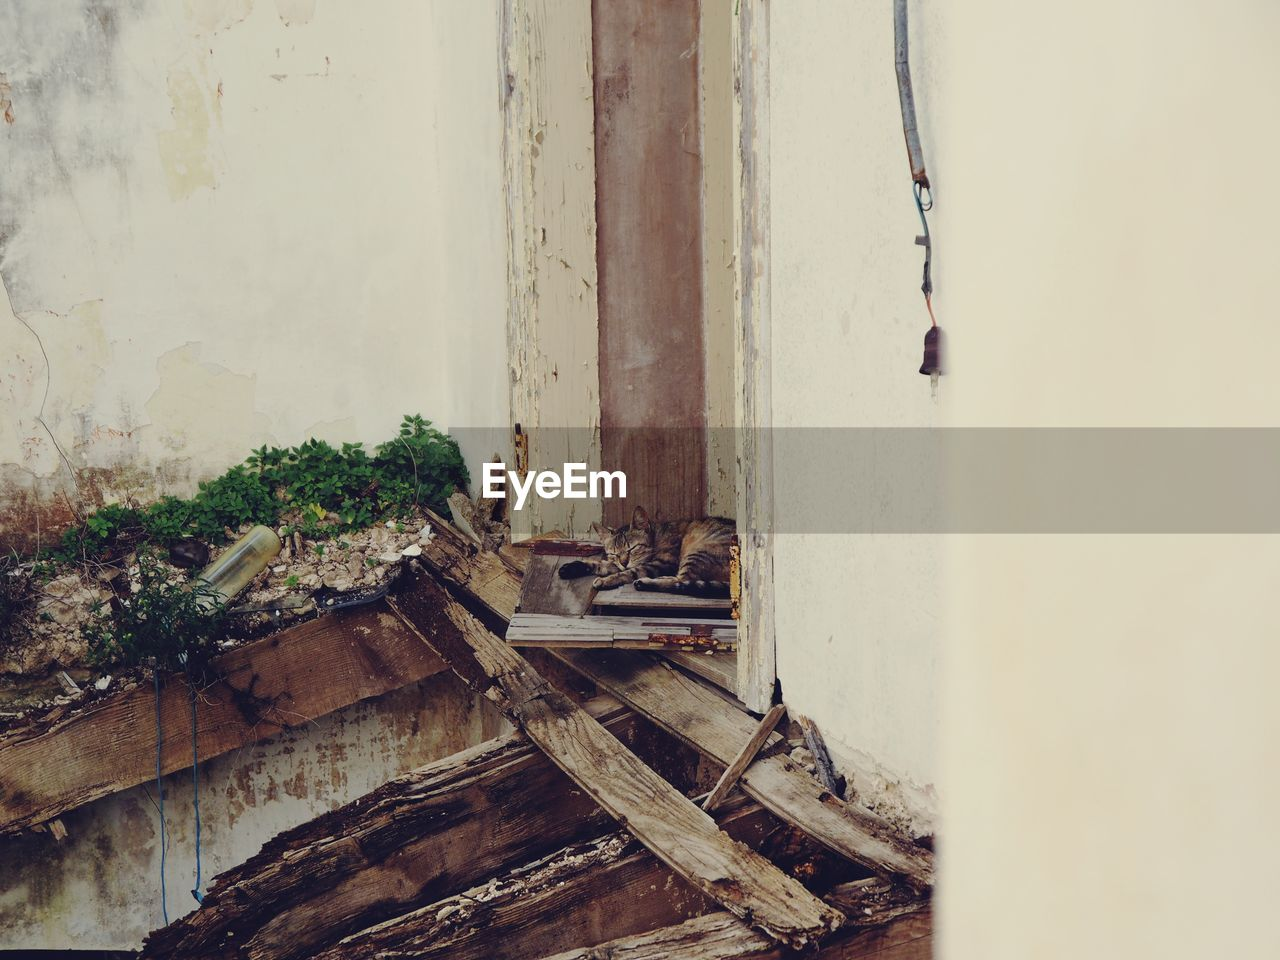 wood - material, no people, architecture, day, old, built structure, metal, wall - building feature, abandoned, outdoors, entrance, damaged, deterioration, door, decline, obsolete, run-down, nature, weathered, ruined